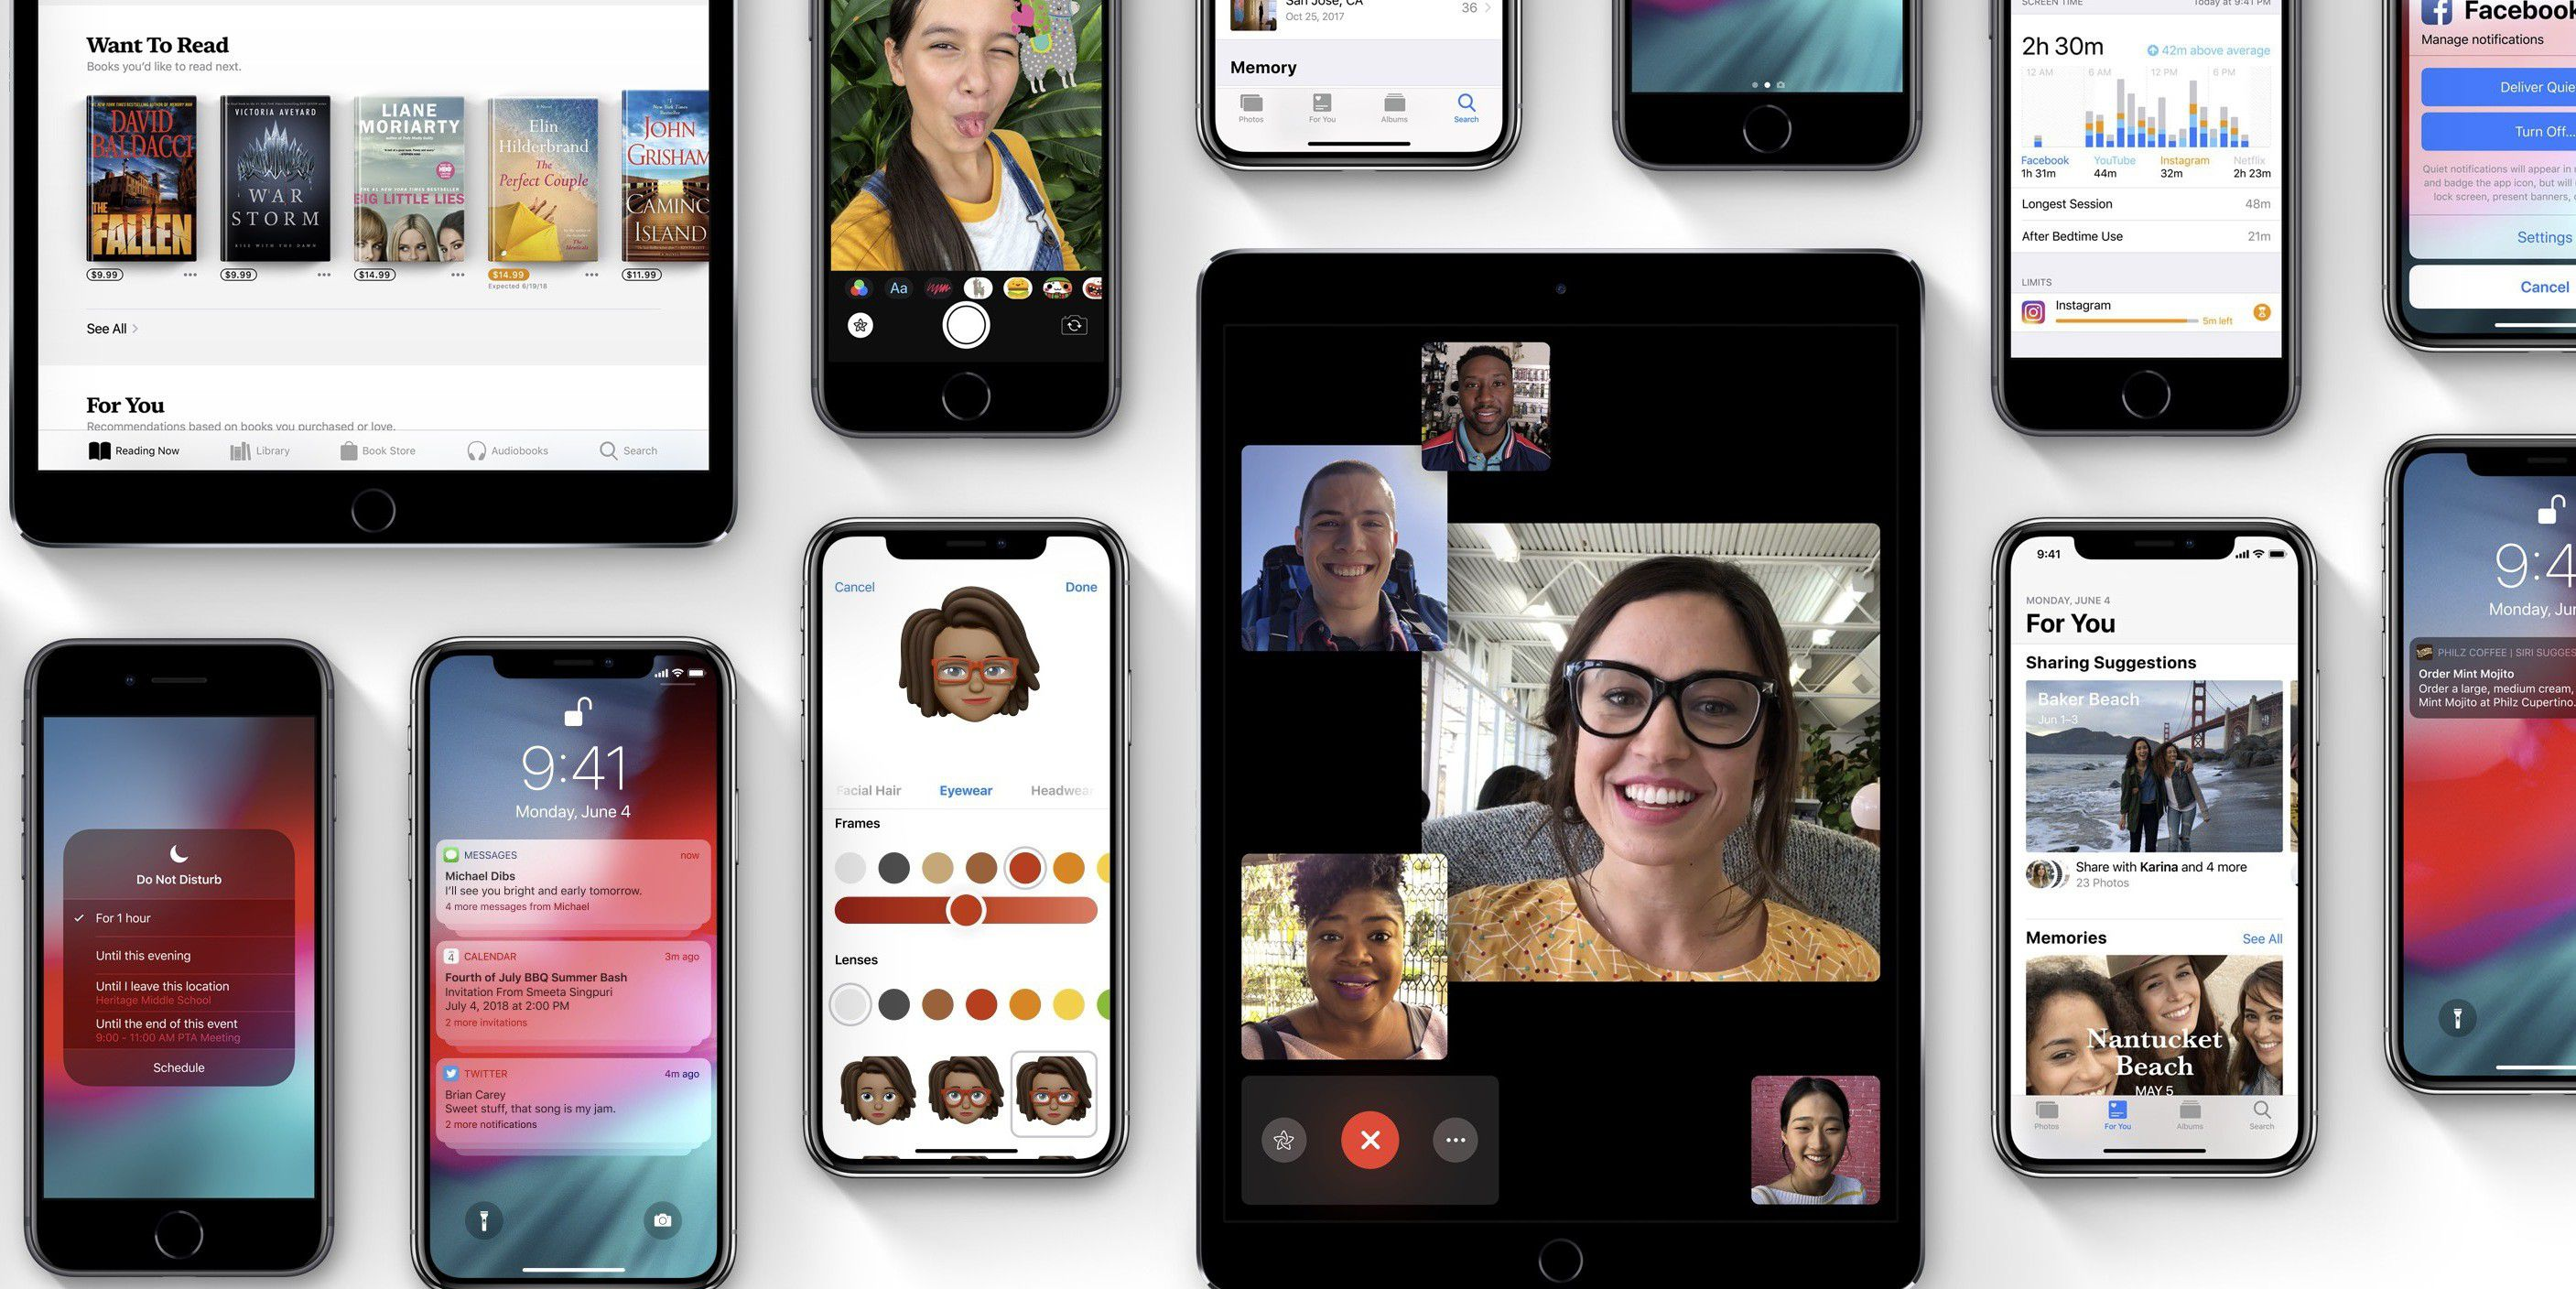 iphone xs max alle apps schlie en